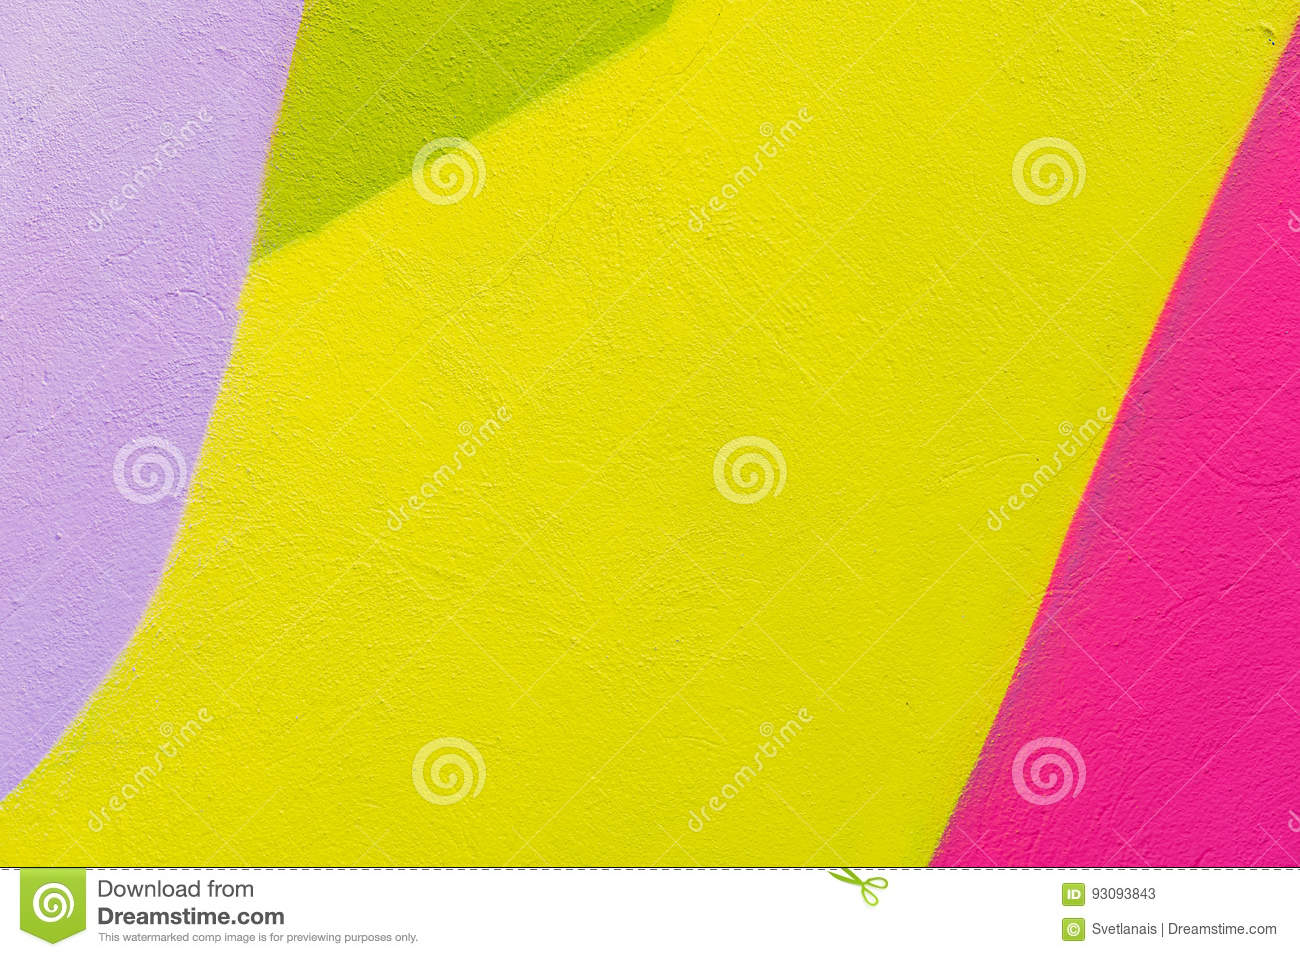 Colorful Abstract Textured Background. Street Art, Plastered Wall ...